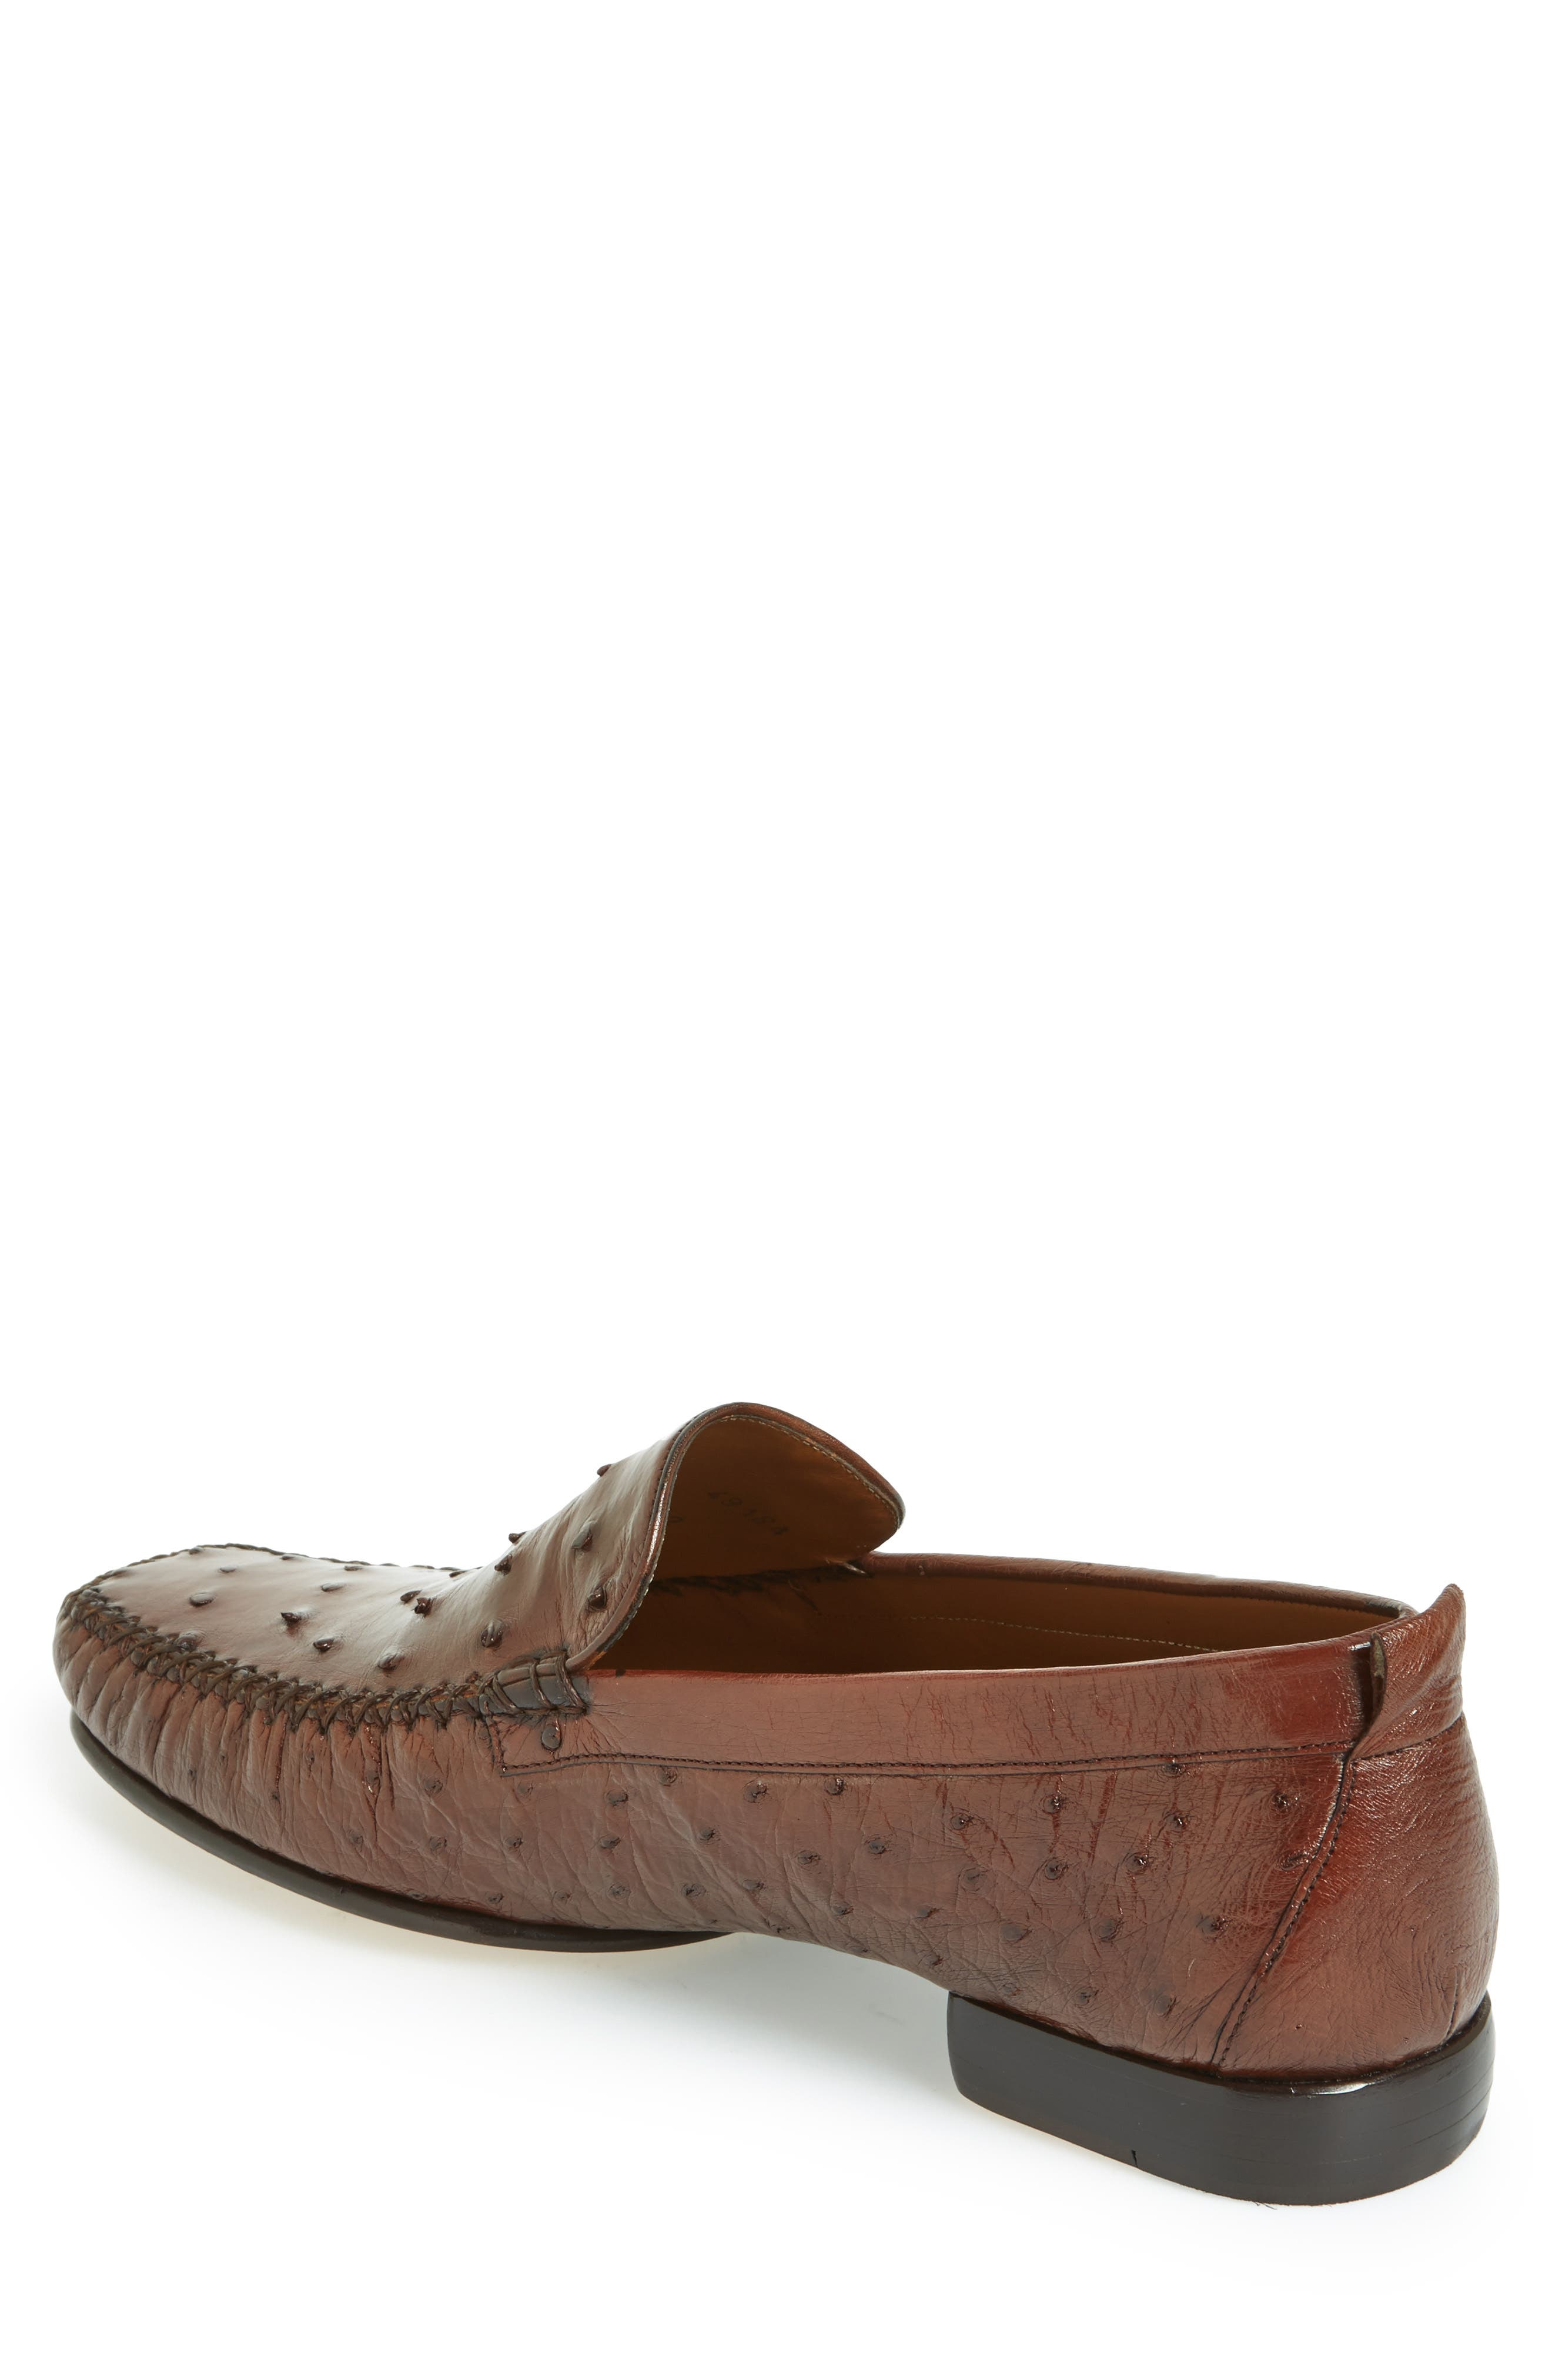 'Rollini' Ostrich Leather Loafer,                             Alternate thumbnail 6, color,                             TOBACCO